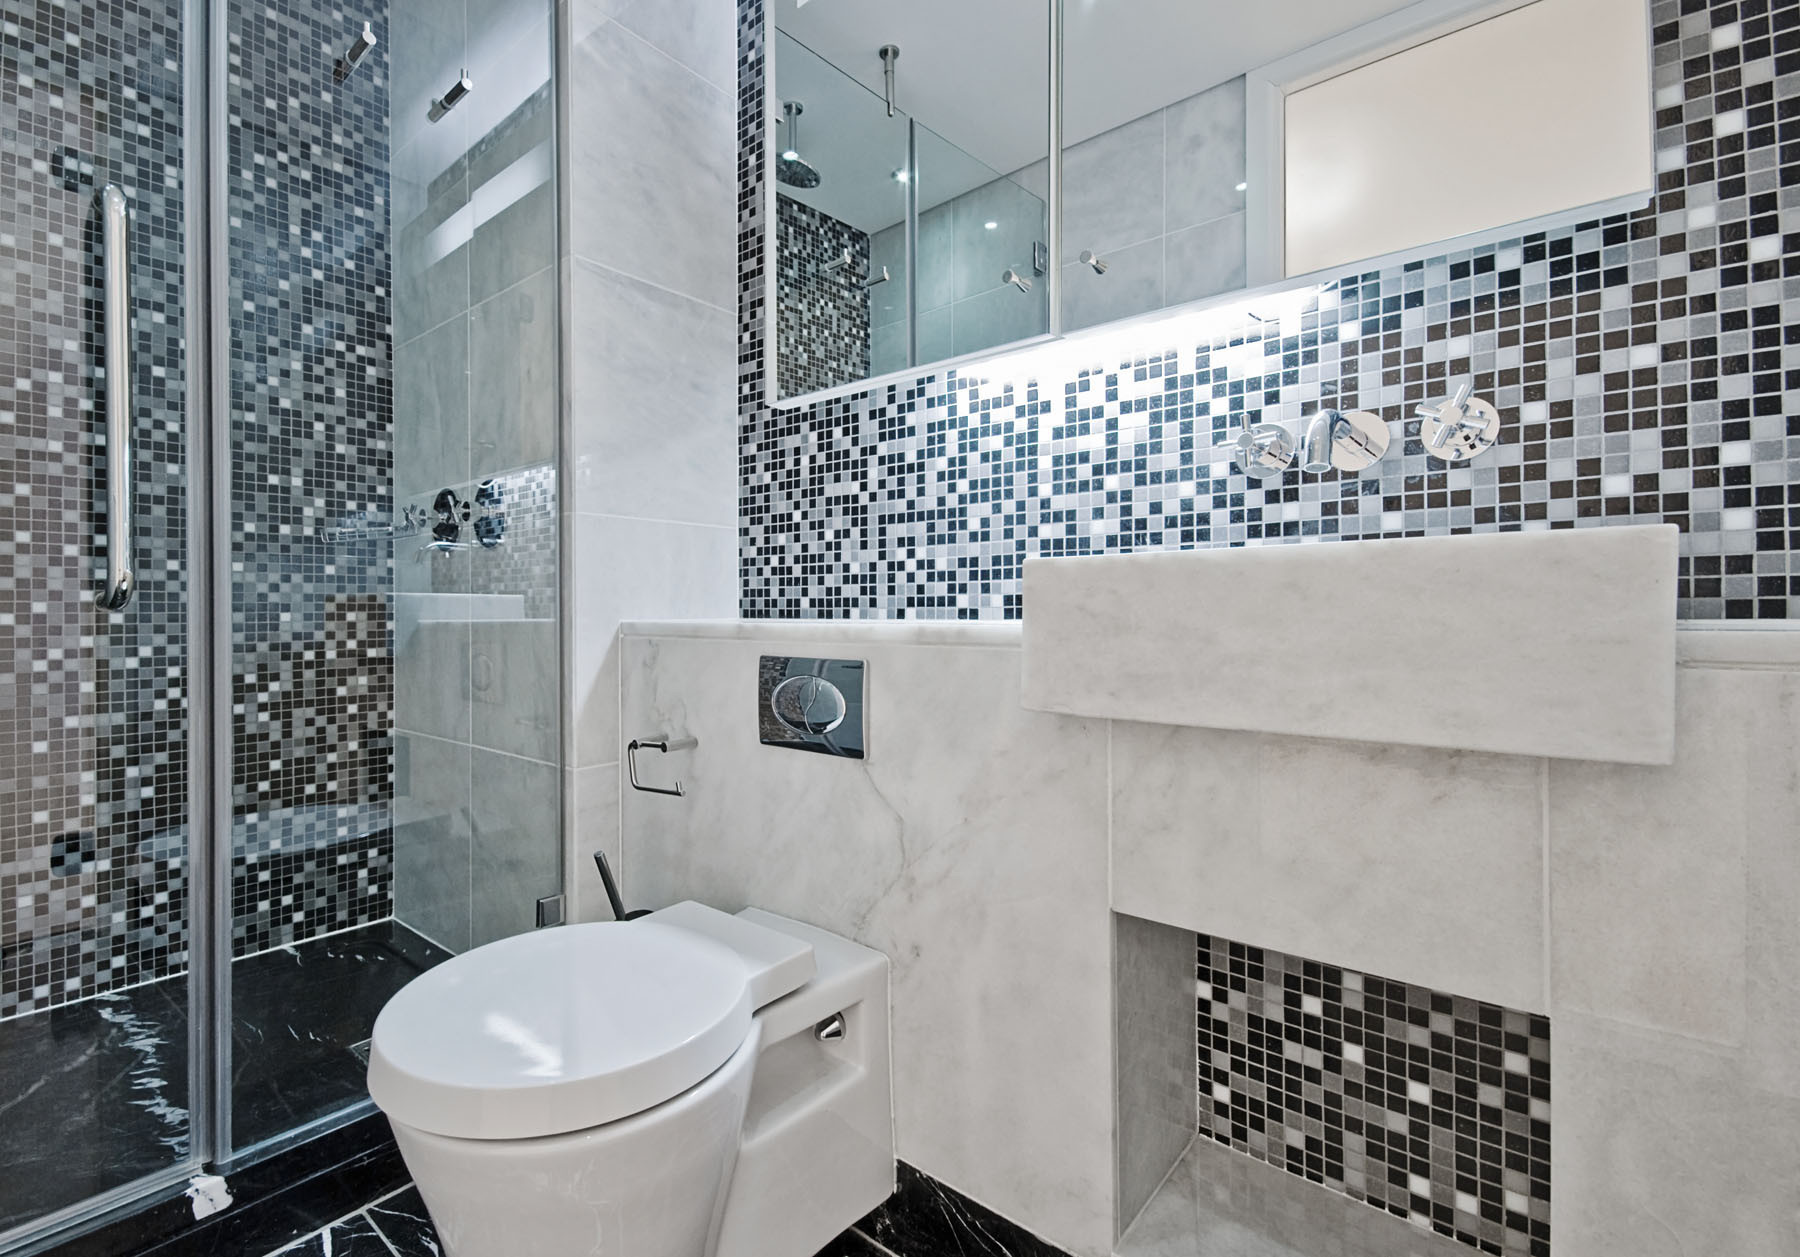 Mixing black, white and gray tile with metal accents adds zing.